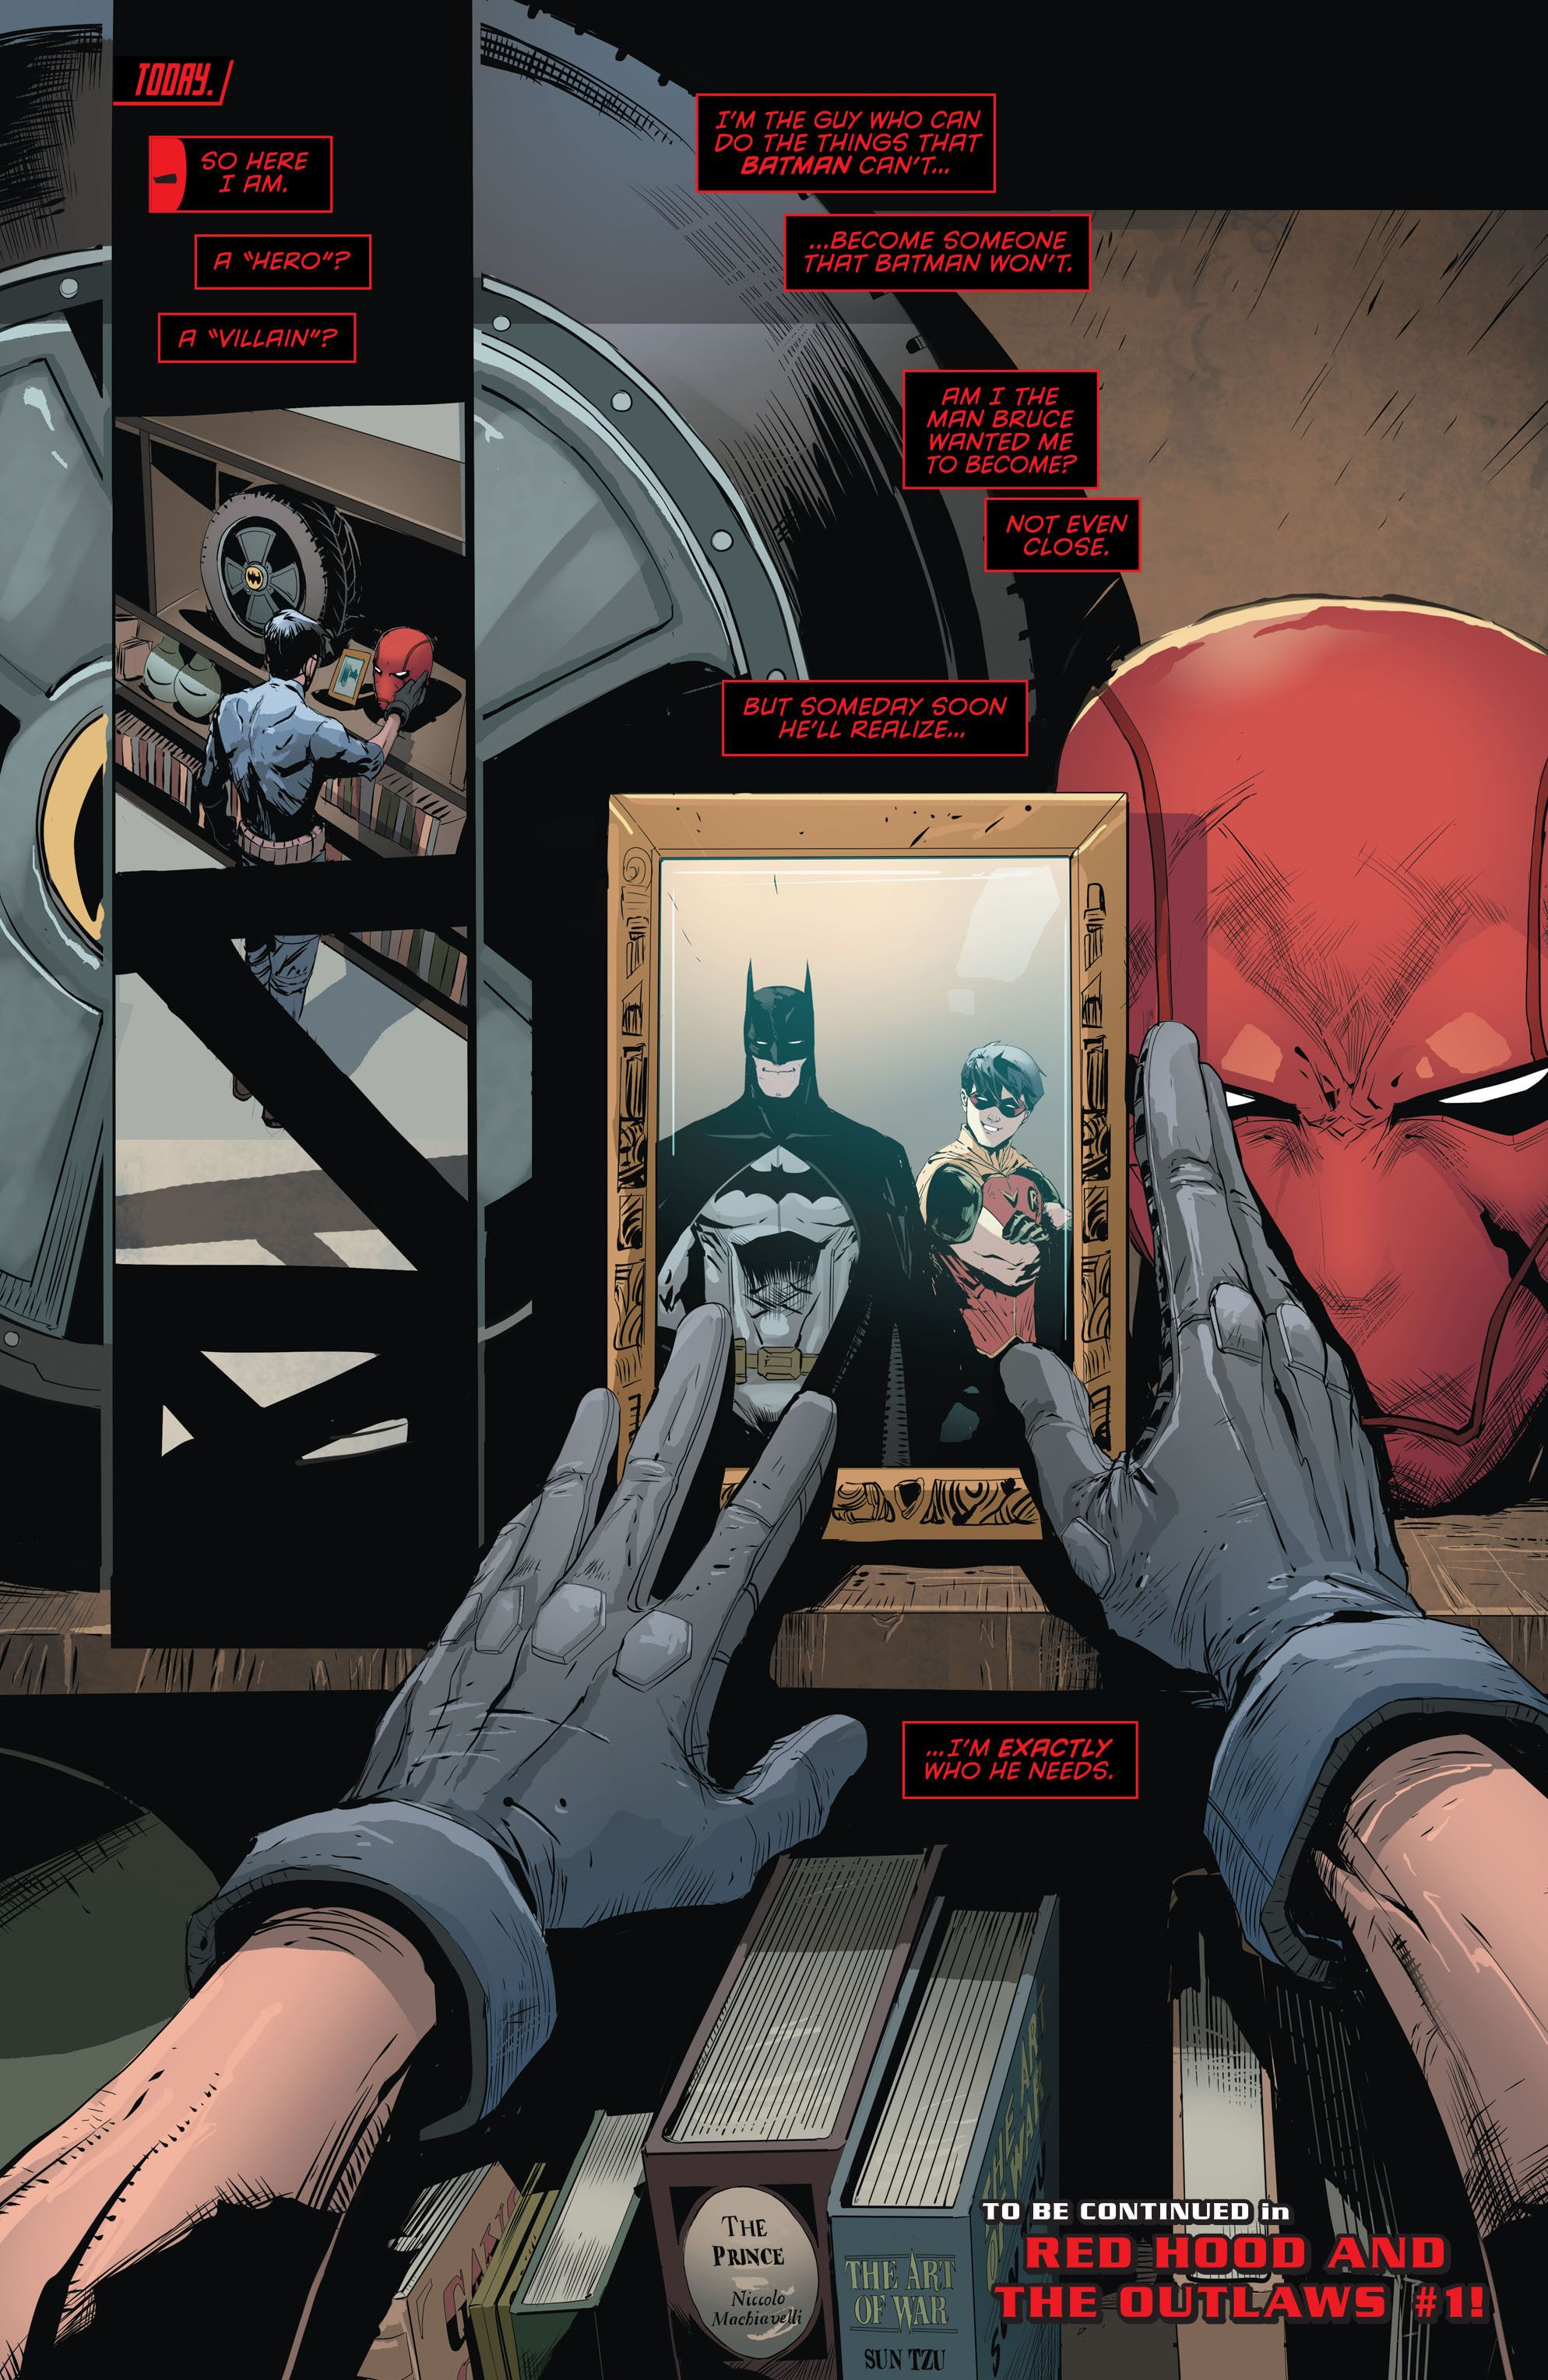 Image result for red hood the outlaws 4 red hood pinterest image result for red hood the outlaws 4 sciox Images